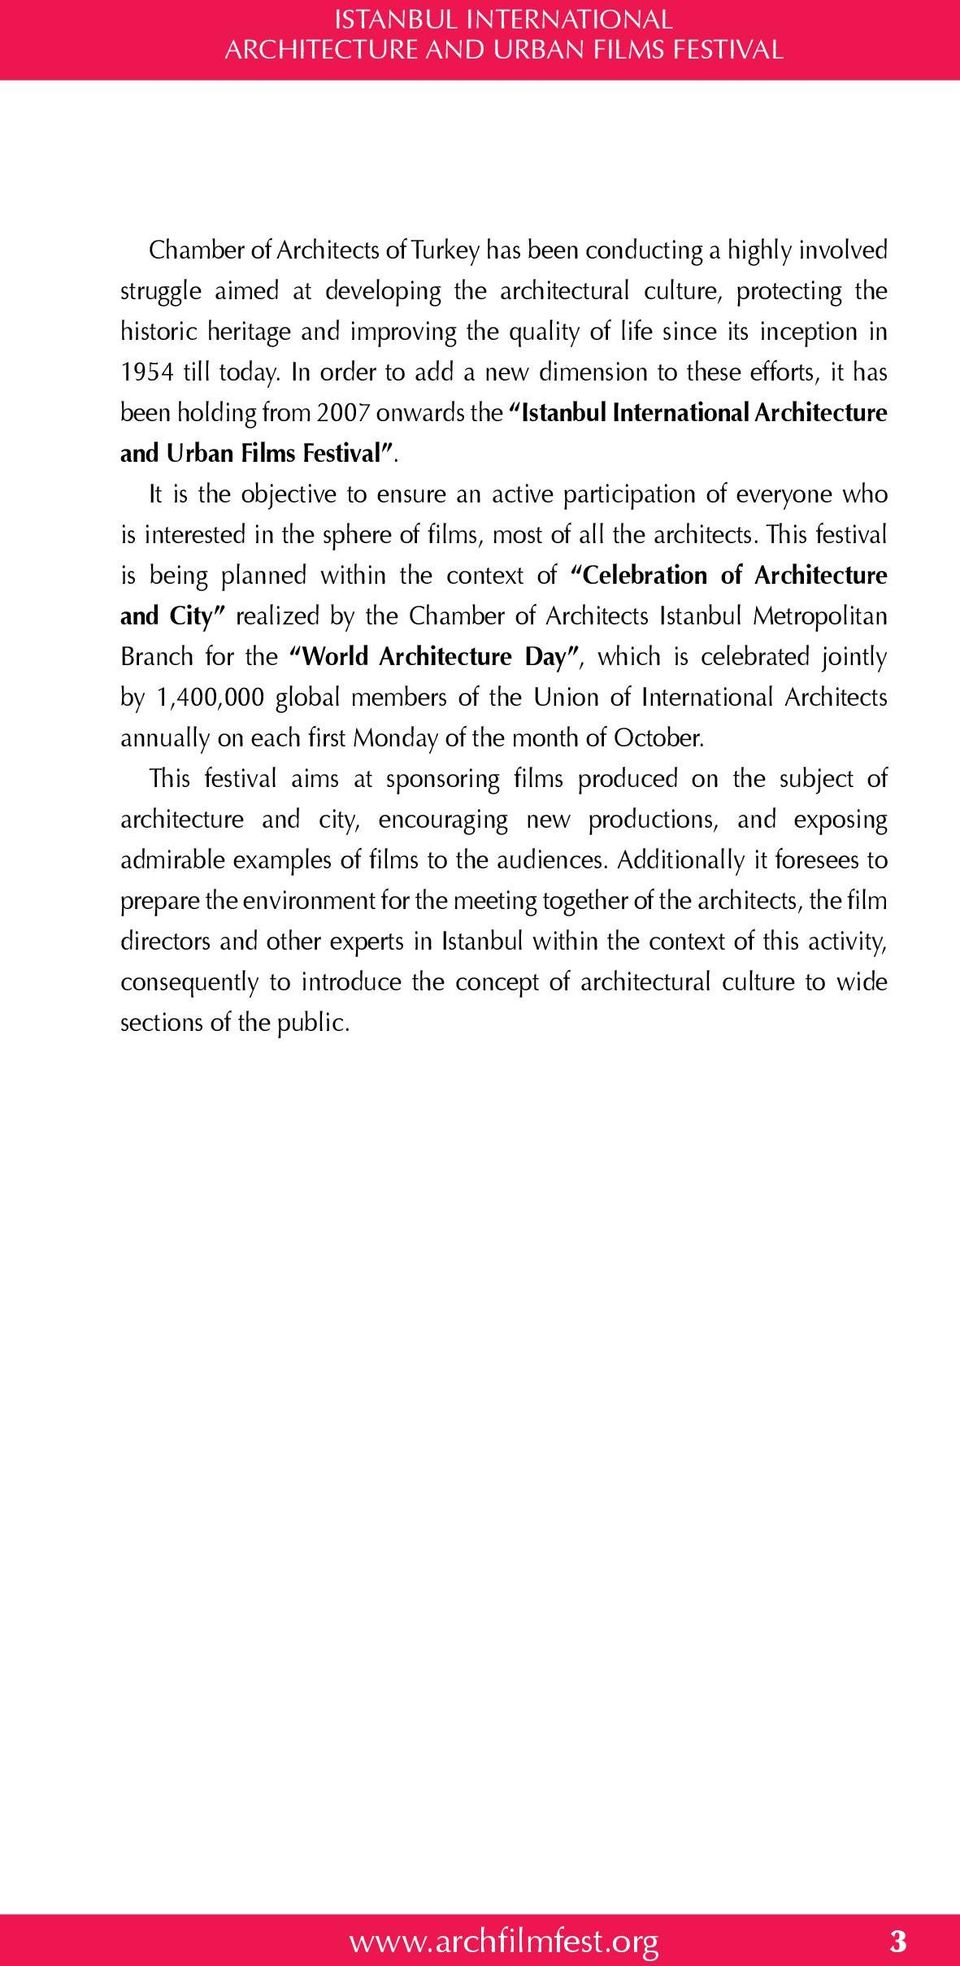 In order to add a new dimension to these efforts, it has been holding from 2007 onwards the Istanbul International Architecture and Urban Films Festival.